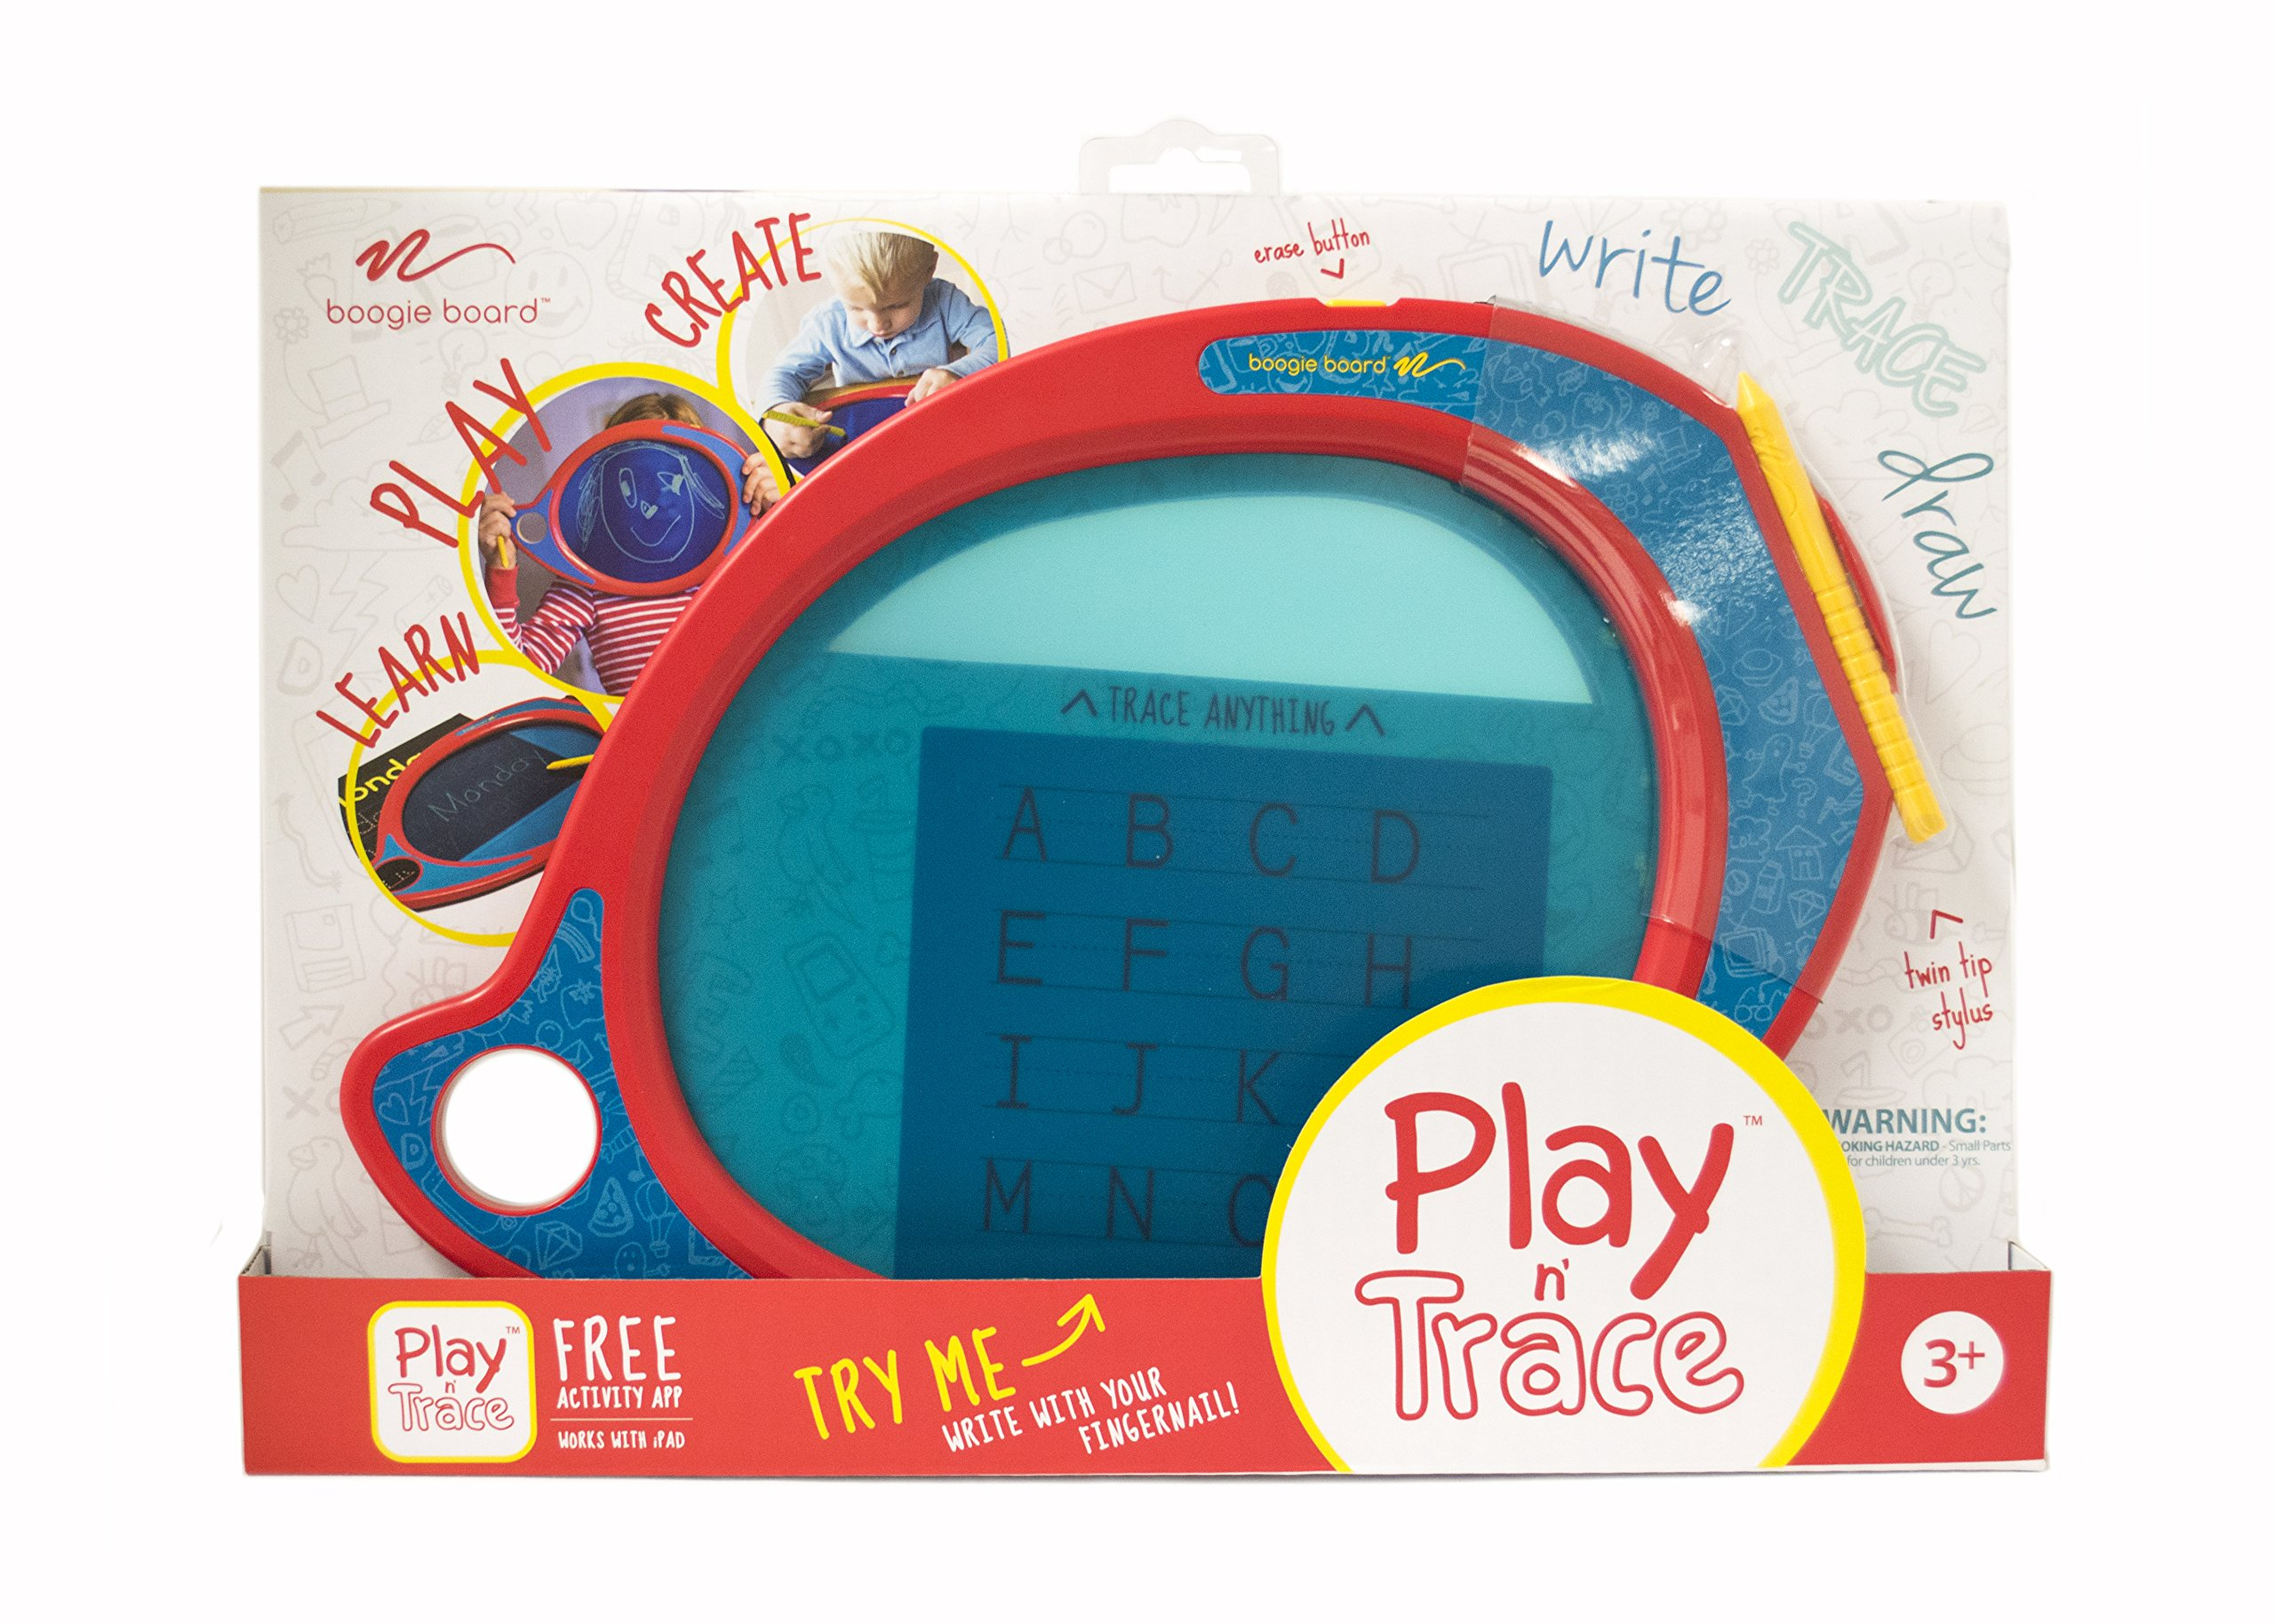 Boogie Board Play and Trace LCD Writing Tablet Clear See-Through Writing Surface for Kids to Write, Trace, and Draw eWriter Ages 3+ by Boogie Board